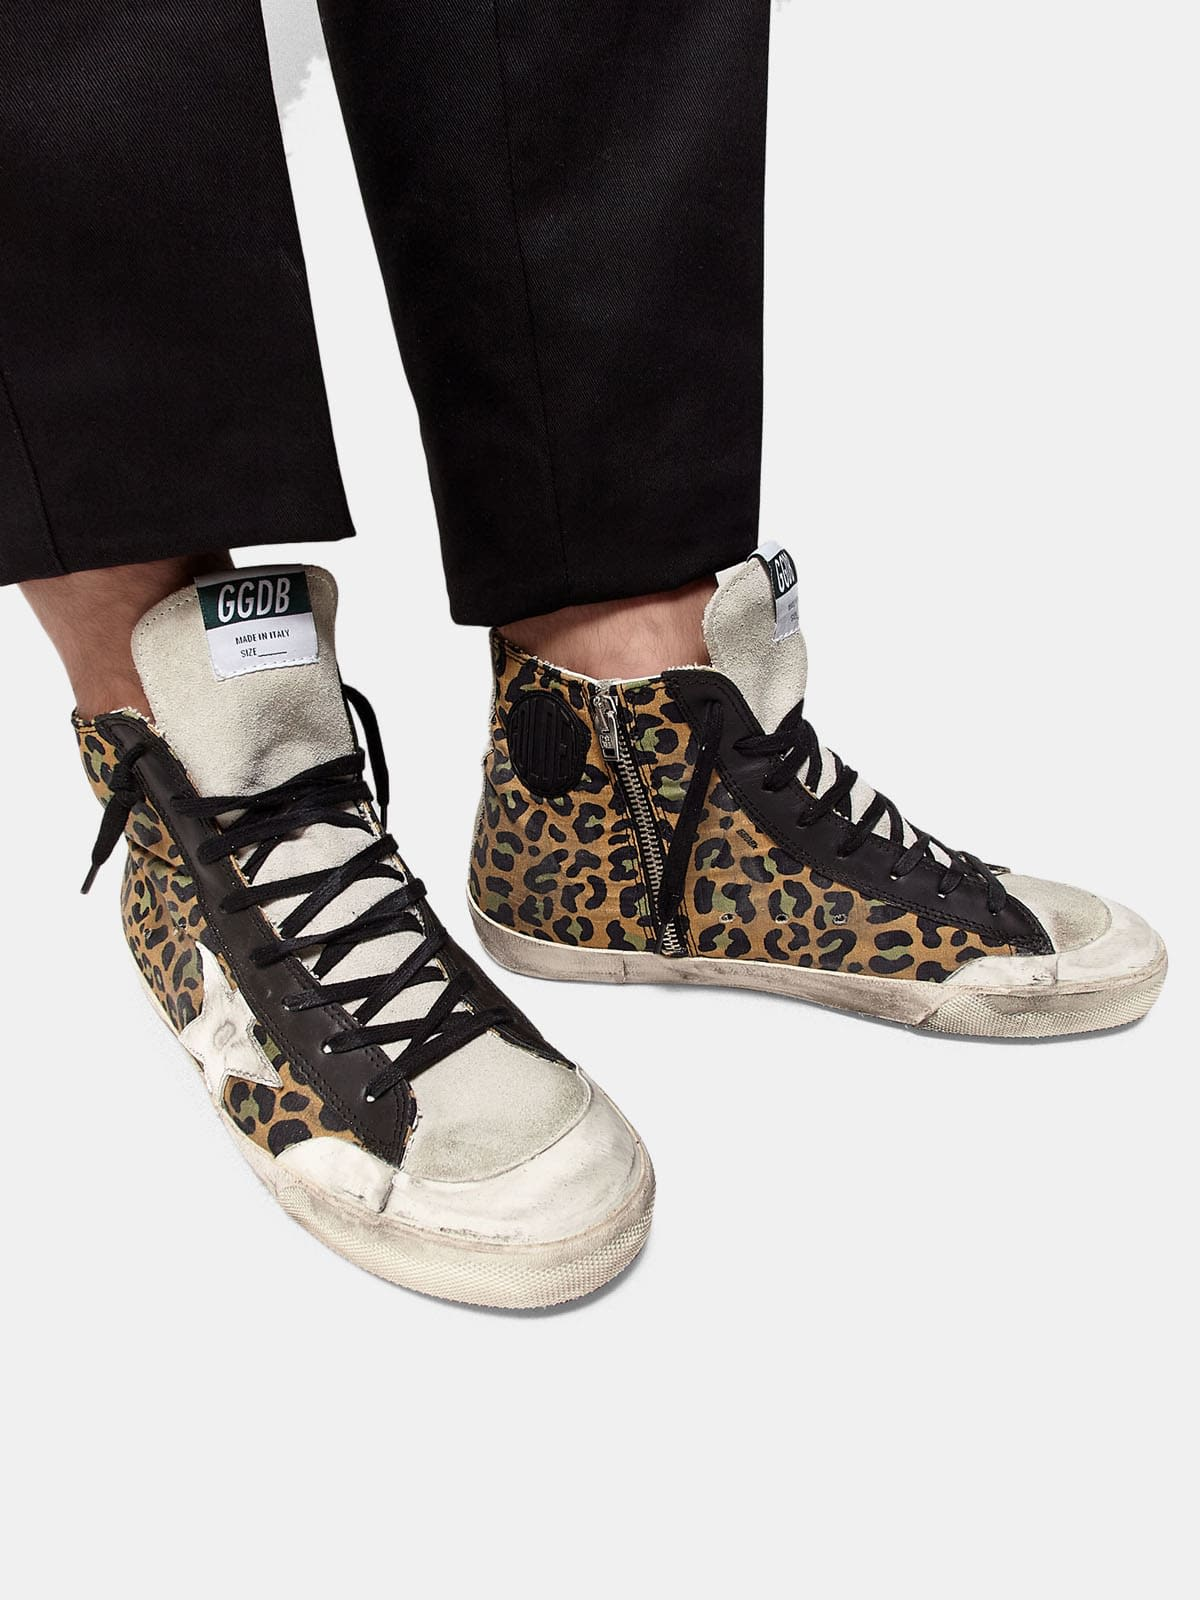 Francy sneakers in canvas with leopard pattern and leather